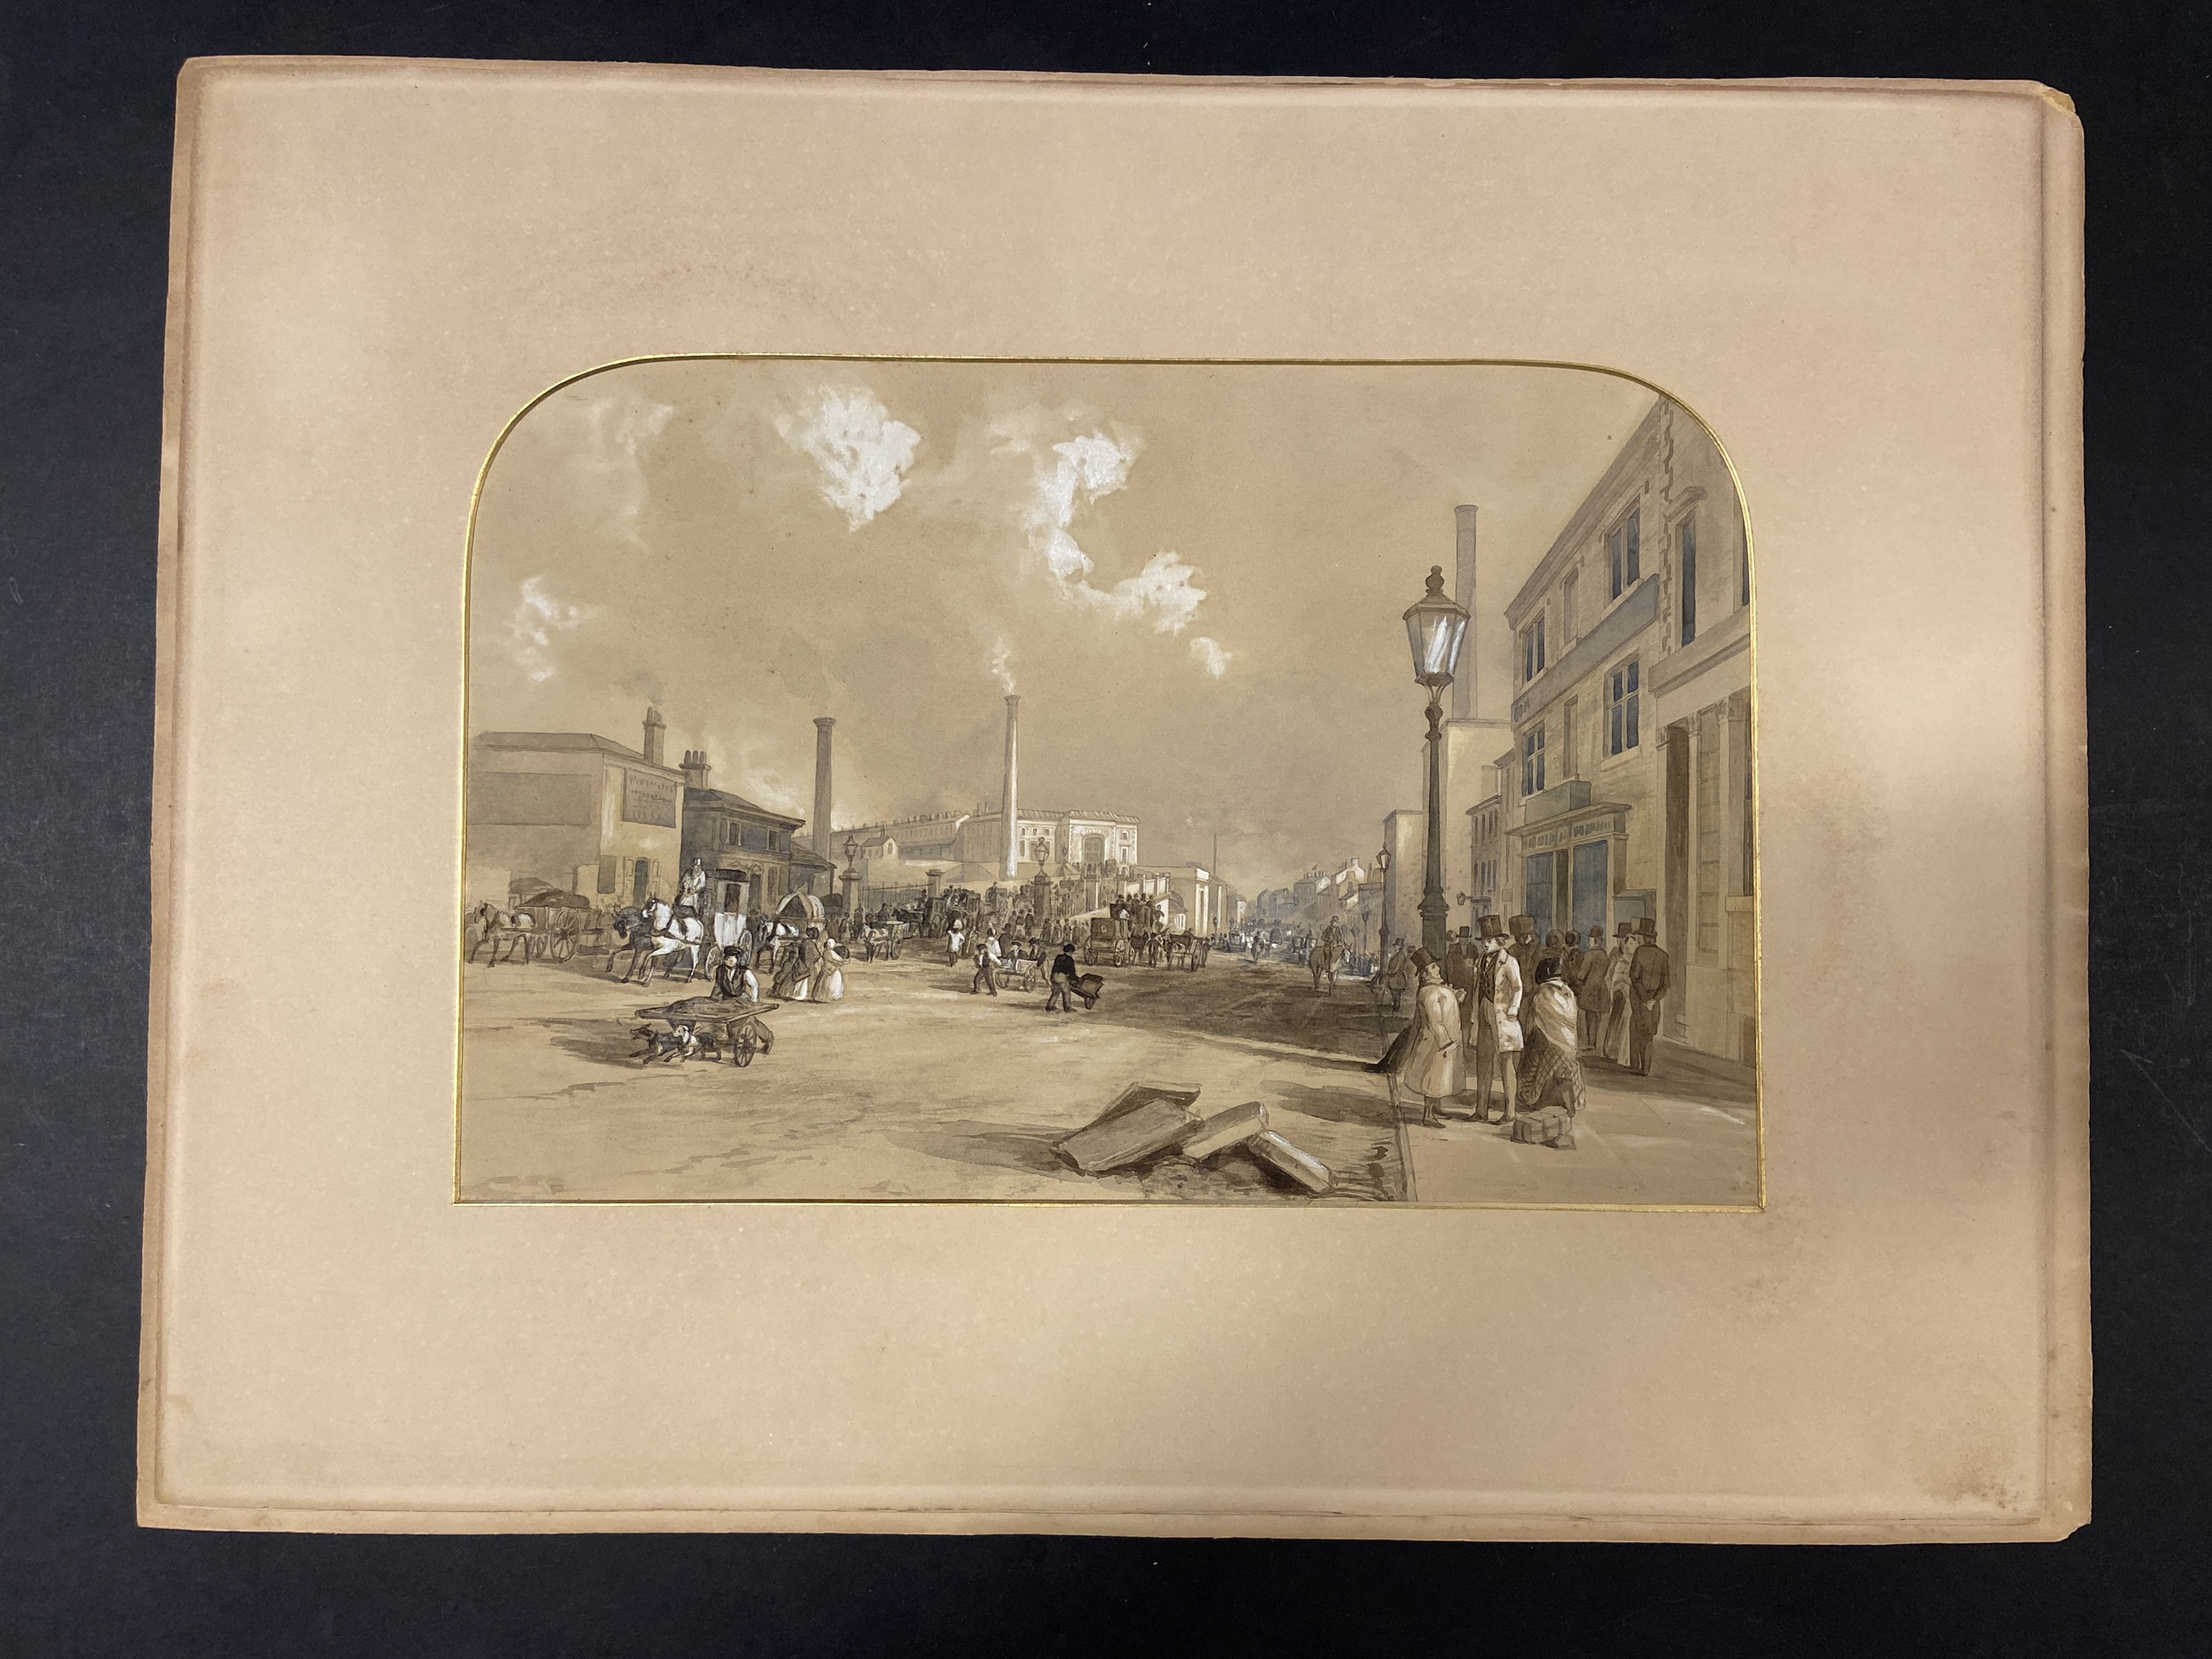 * Tait (Arthur Fitzwilliam). 7 watercolours from Views on the Manchester & Leeds Railway - Image 7 of 7